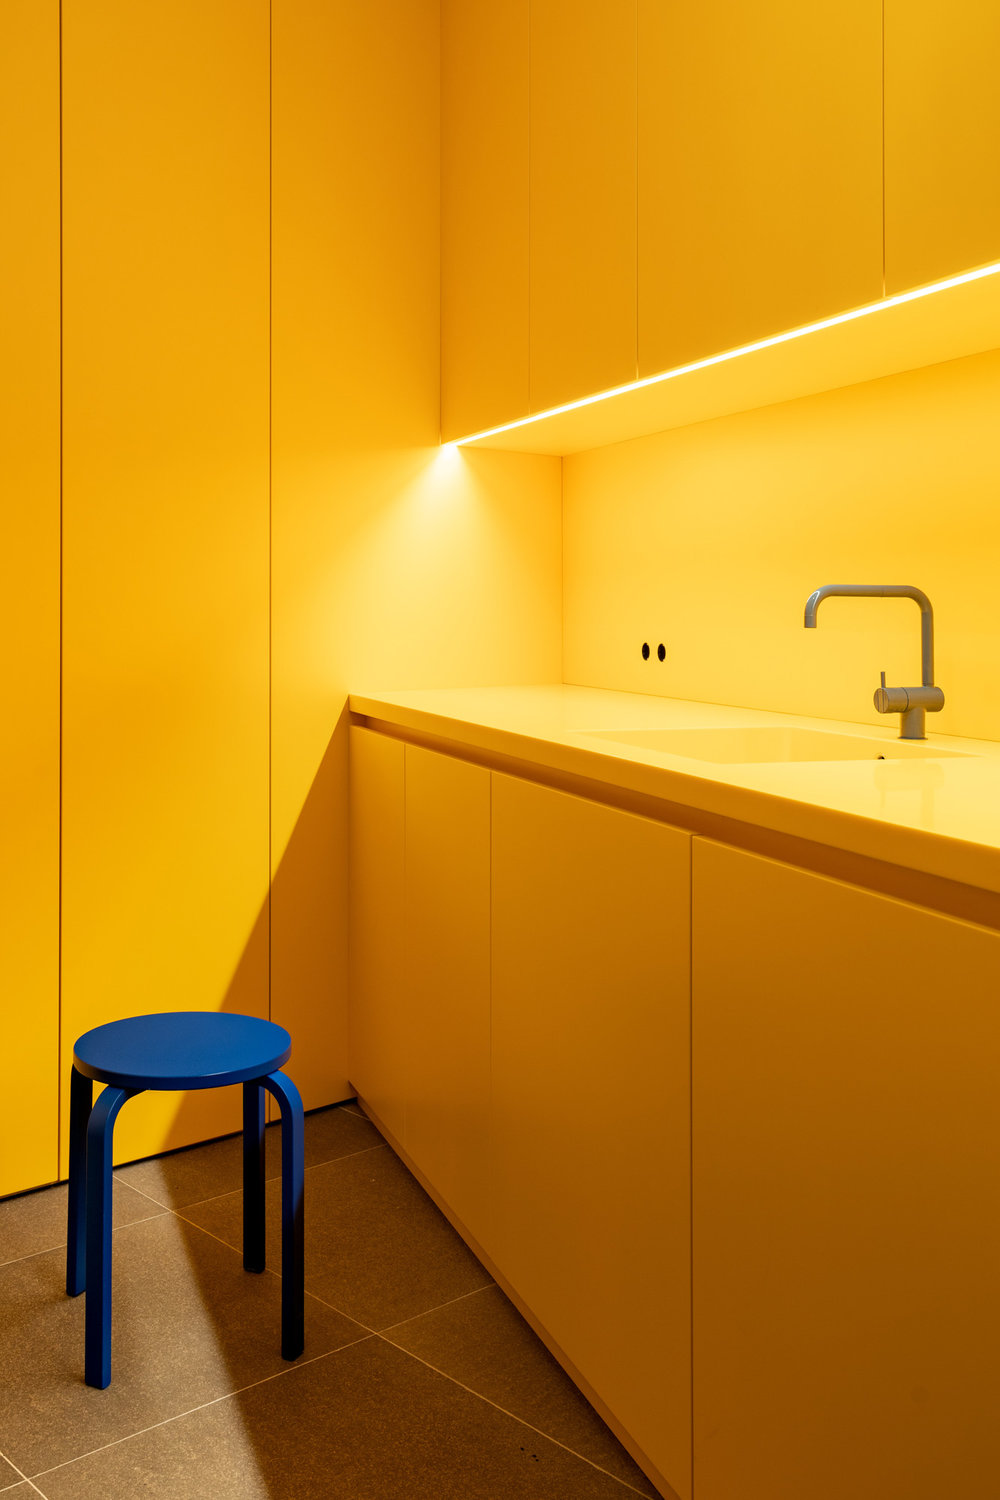 SEBASTIAN ZENKER INTERIOR DESIGN - LAUNDRY ROOM  3.jpg